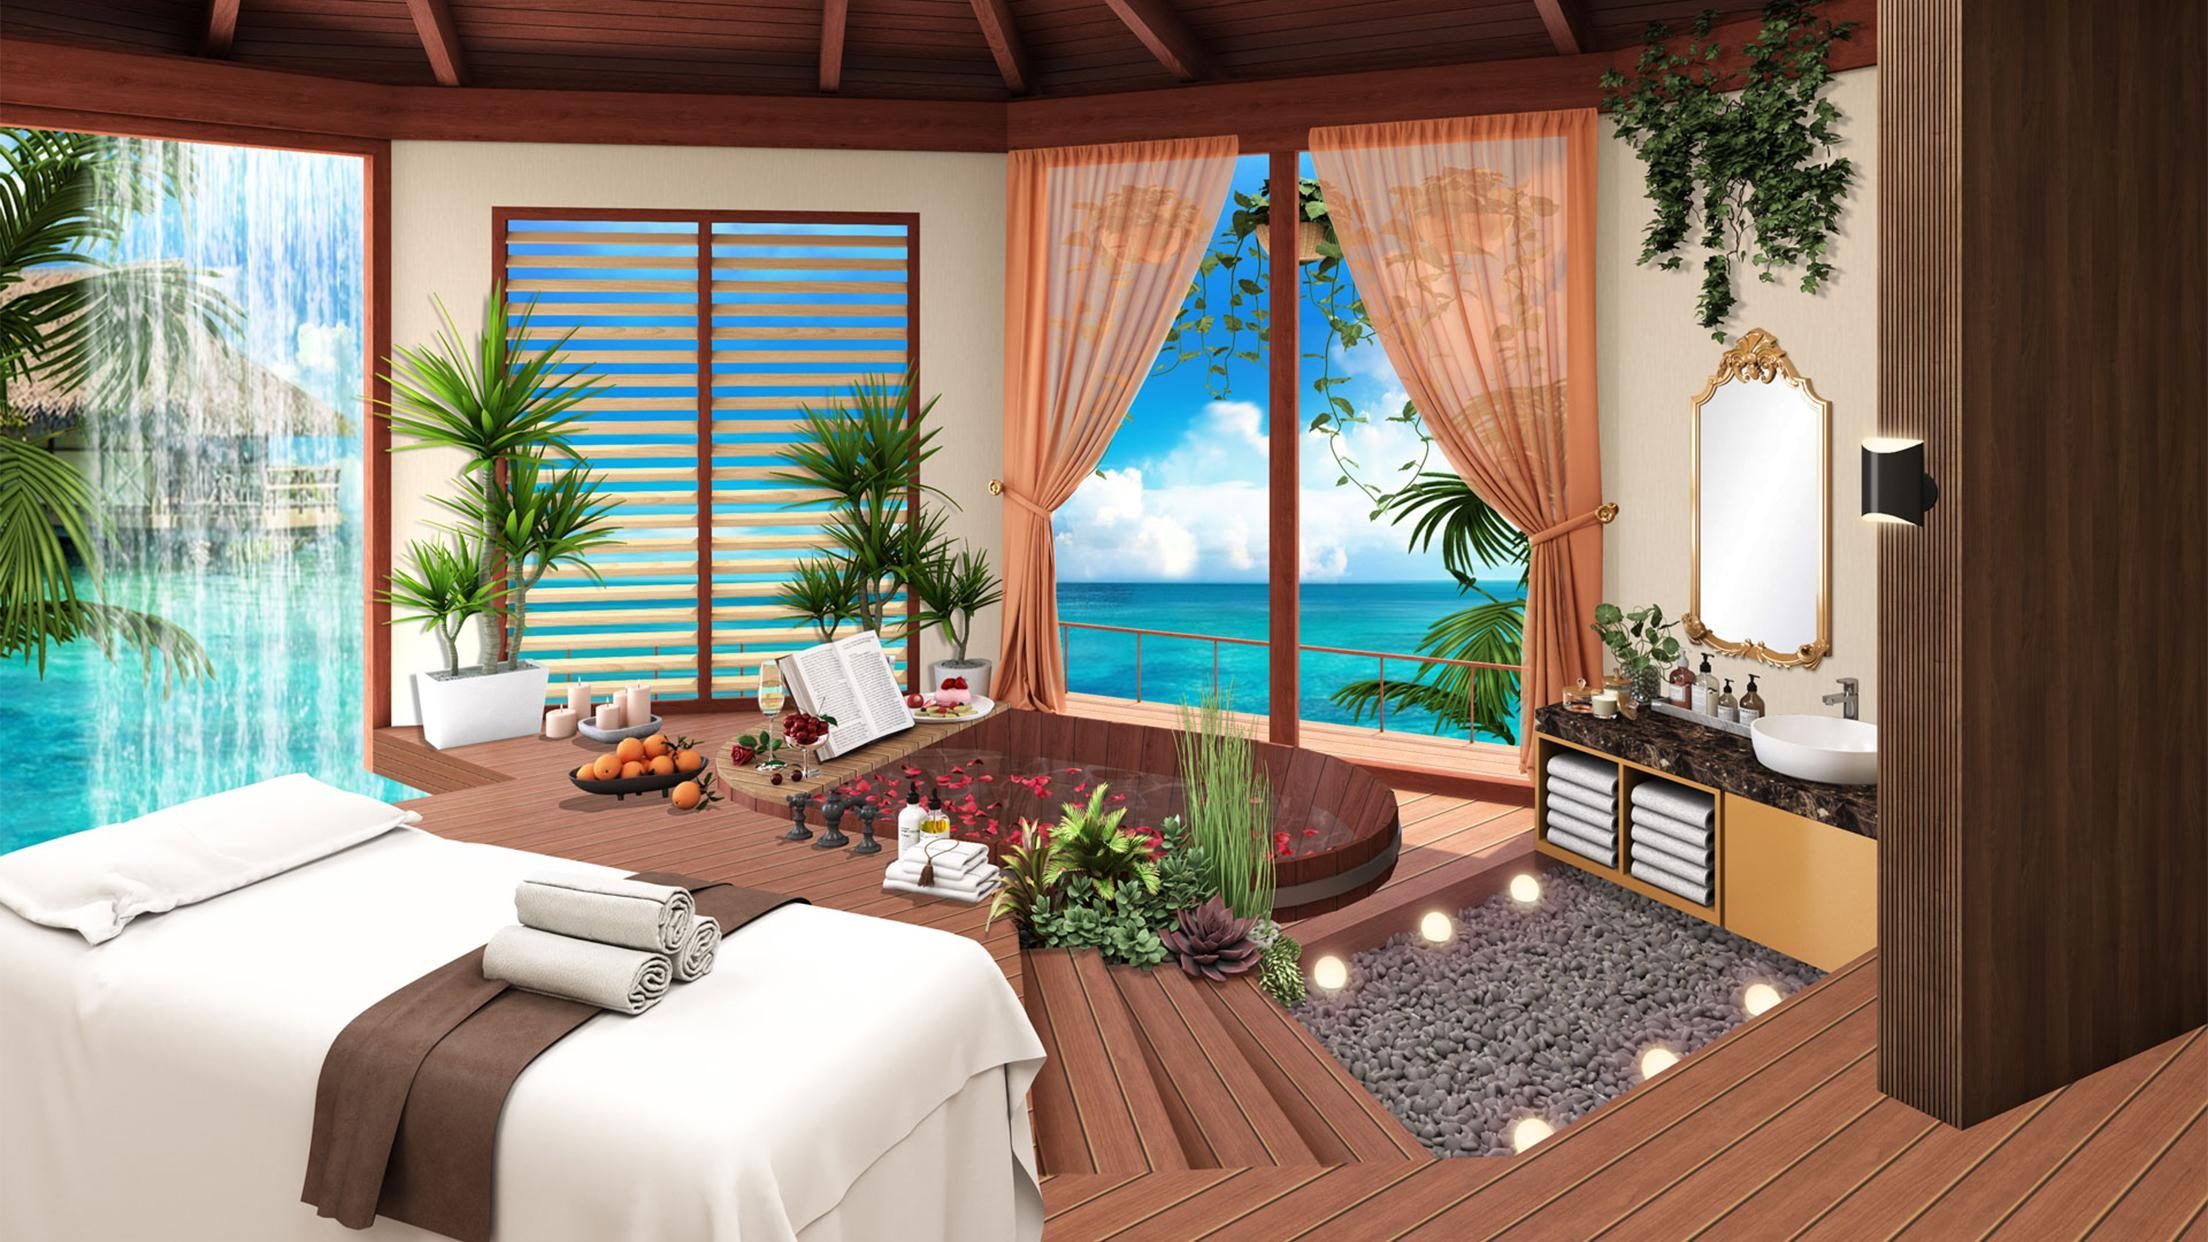 Home Design Hawaii Life For Android Apk Download